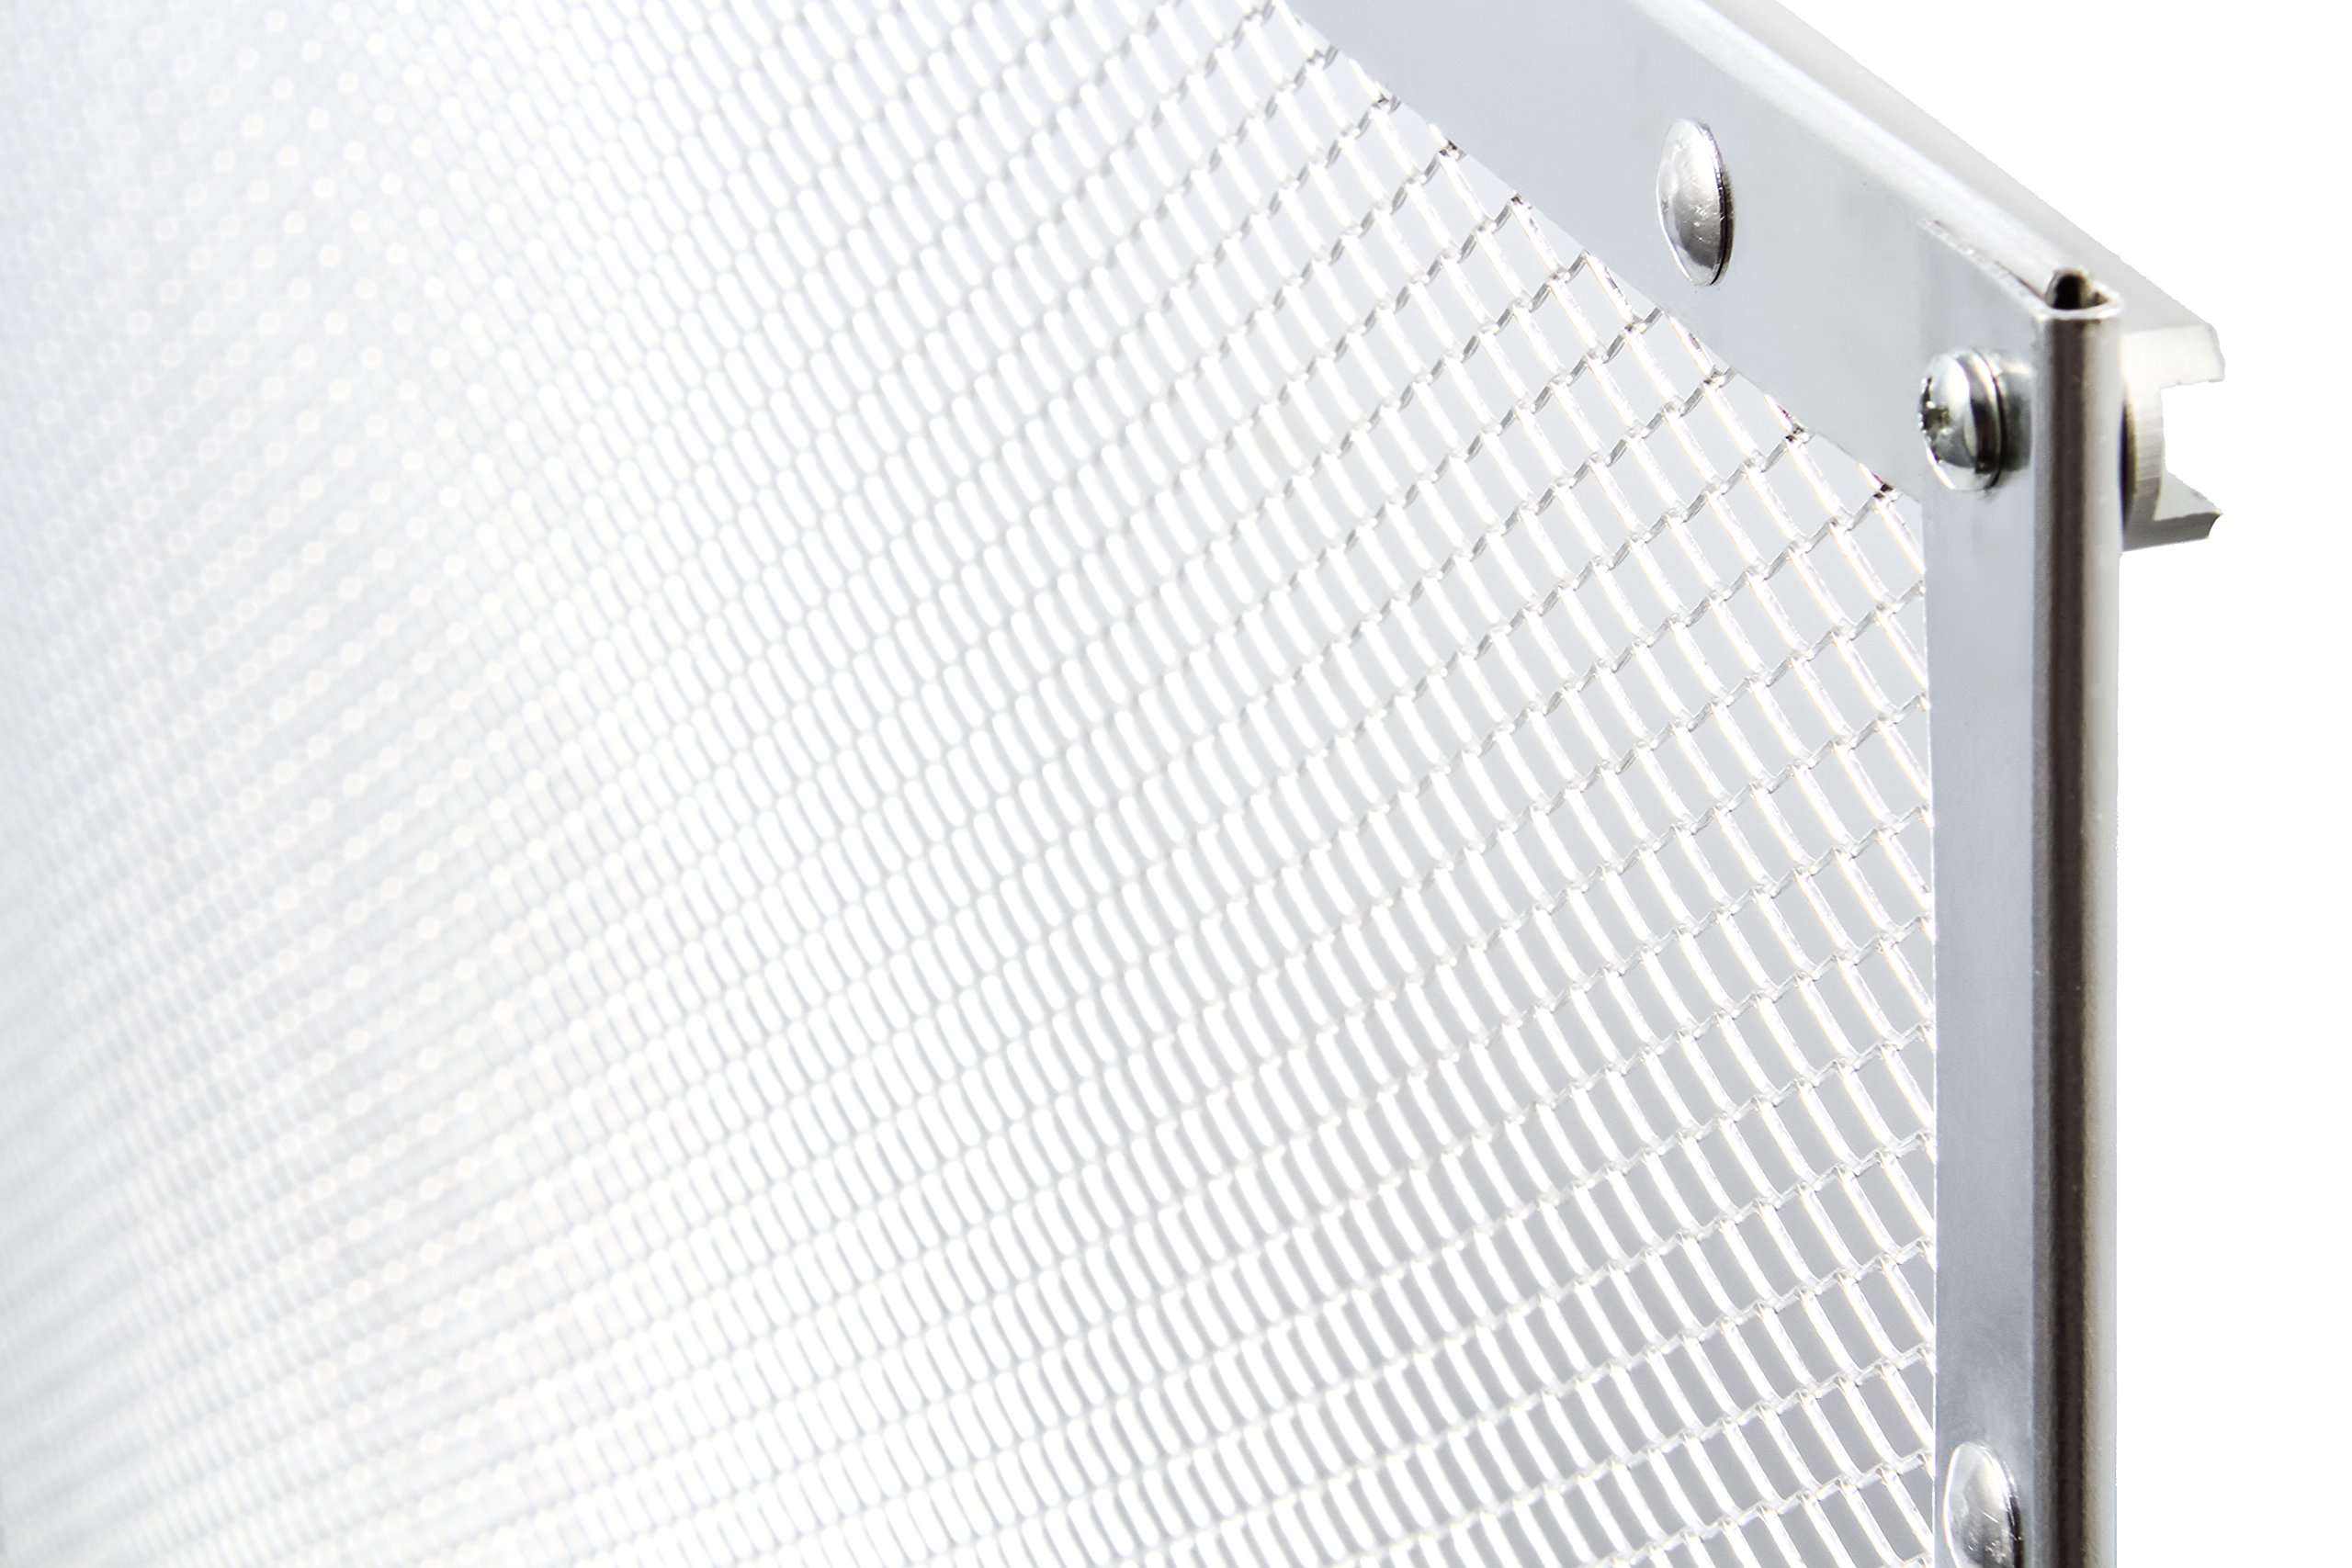 Camco 43981 Aluminum Screen Door Standard Mesh Grille - Protects Your RV's Screen Door, Anodized Aluminum Will Not Corrode by Camco (Image #5)